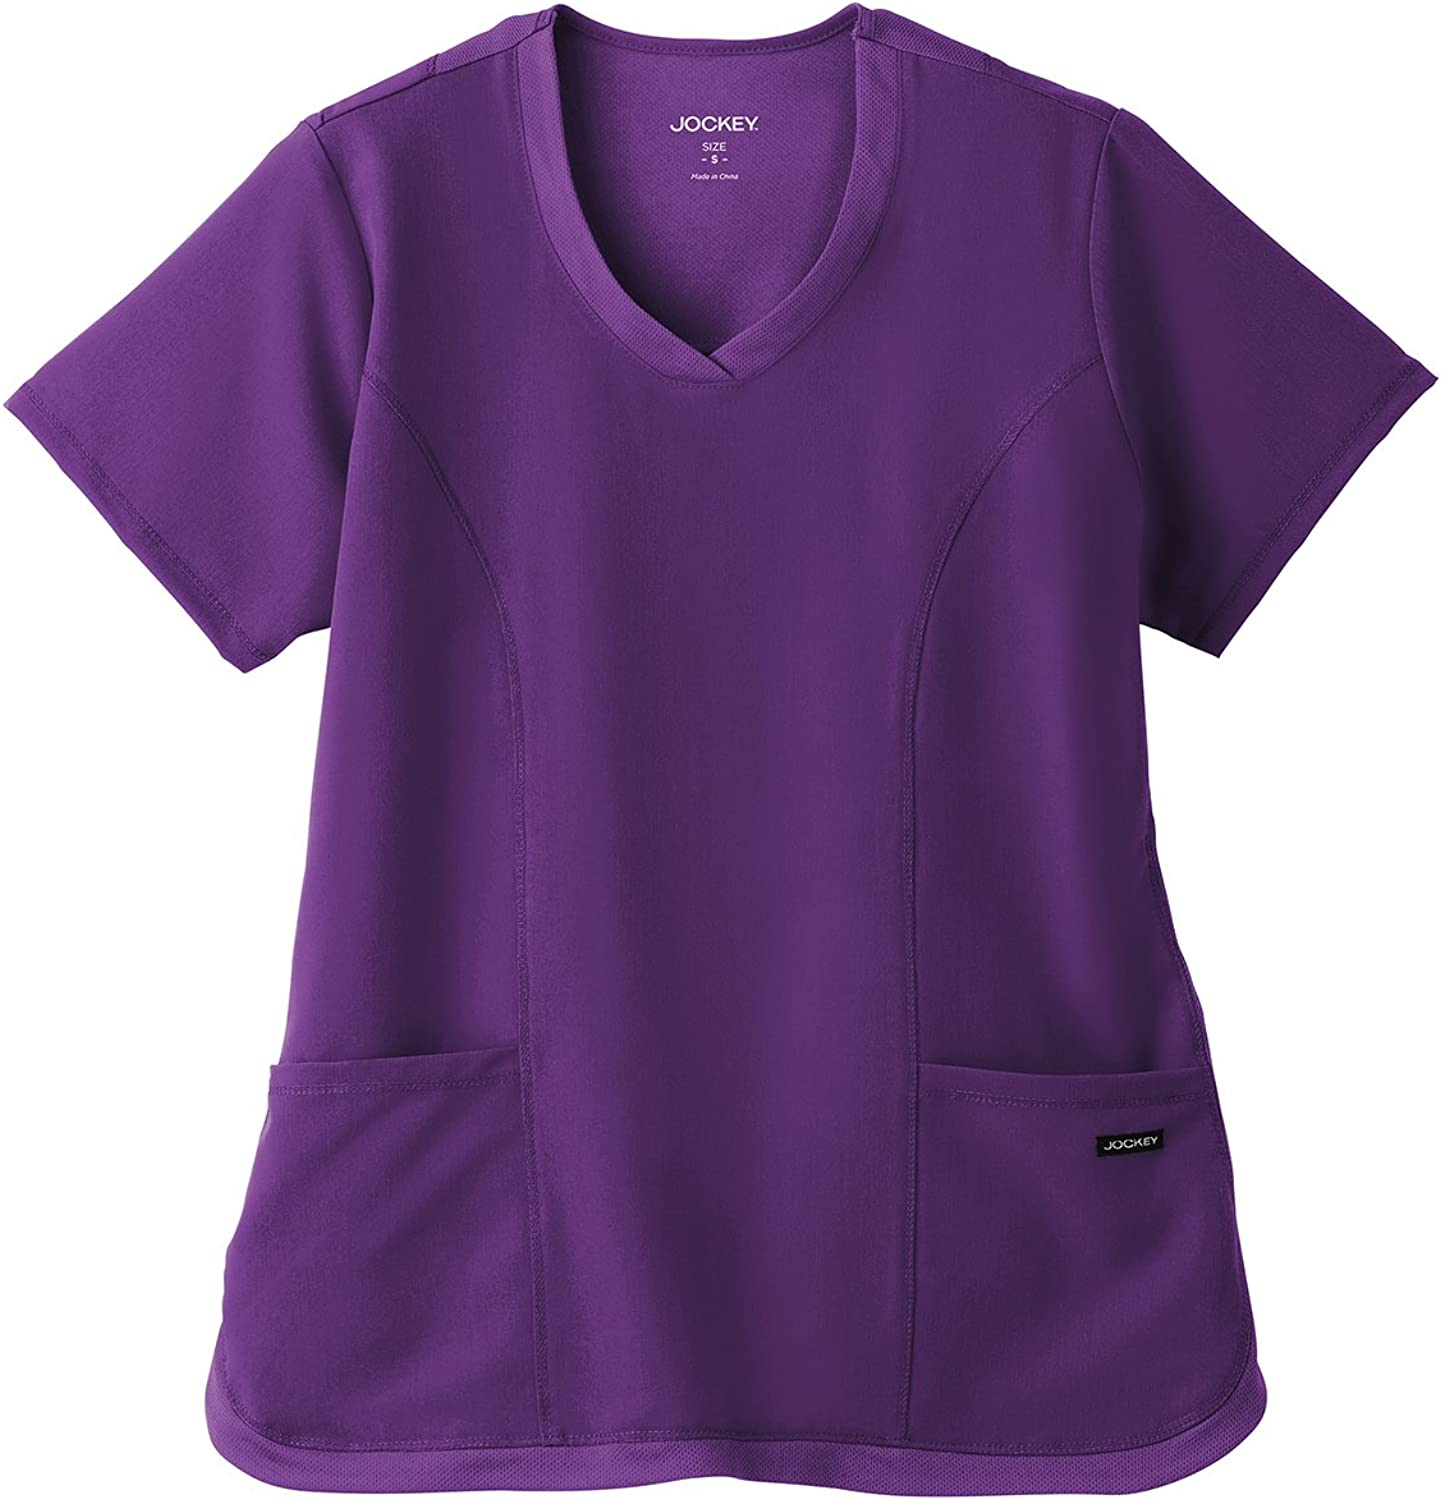 Jockey Modern Fit Collection Women's Curved Mesh VNeck Solid Scrub Top